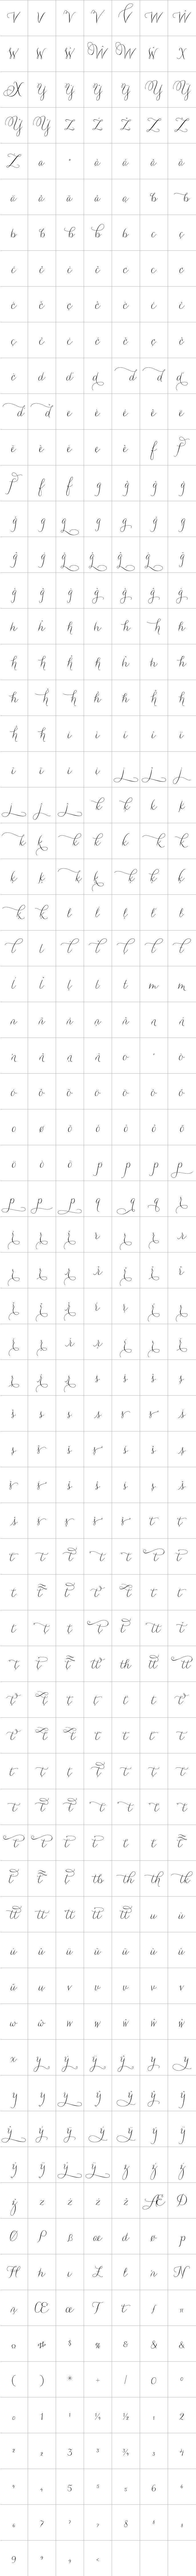 This is a listing of all 1,181 glyphs contained in the font